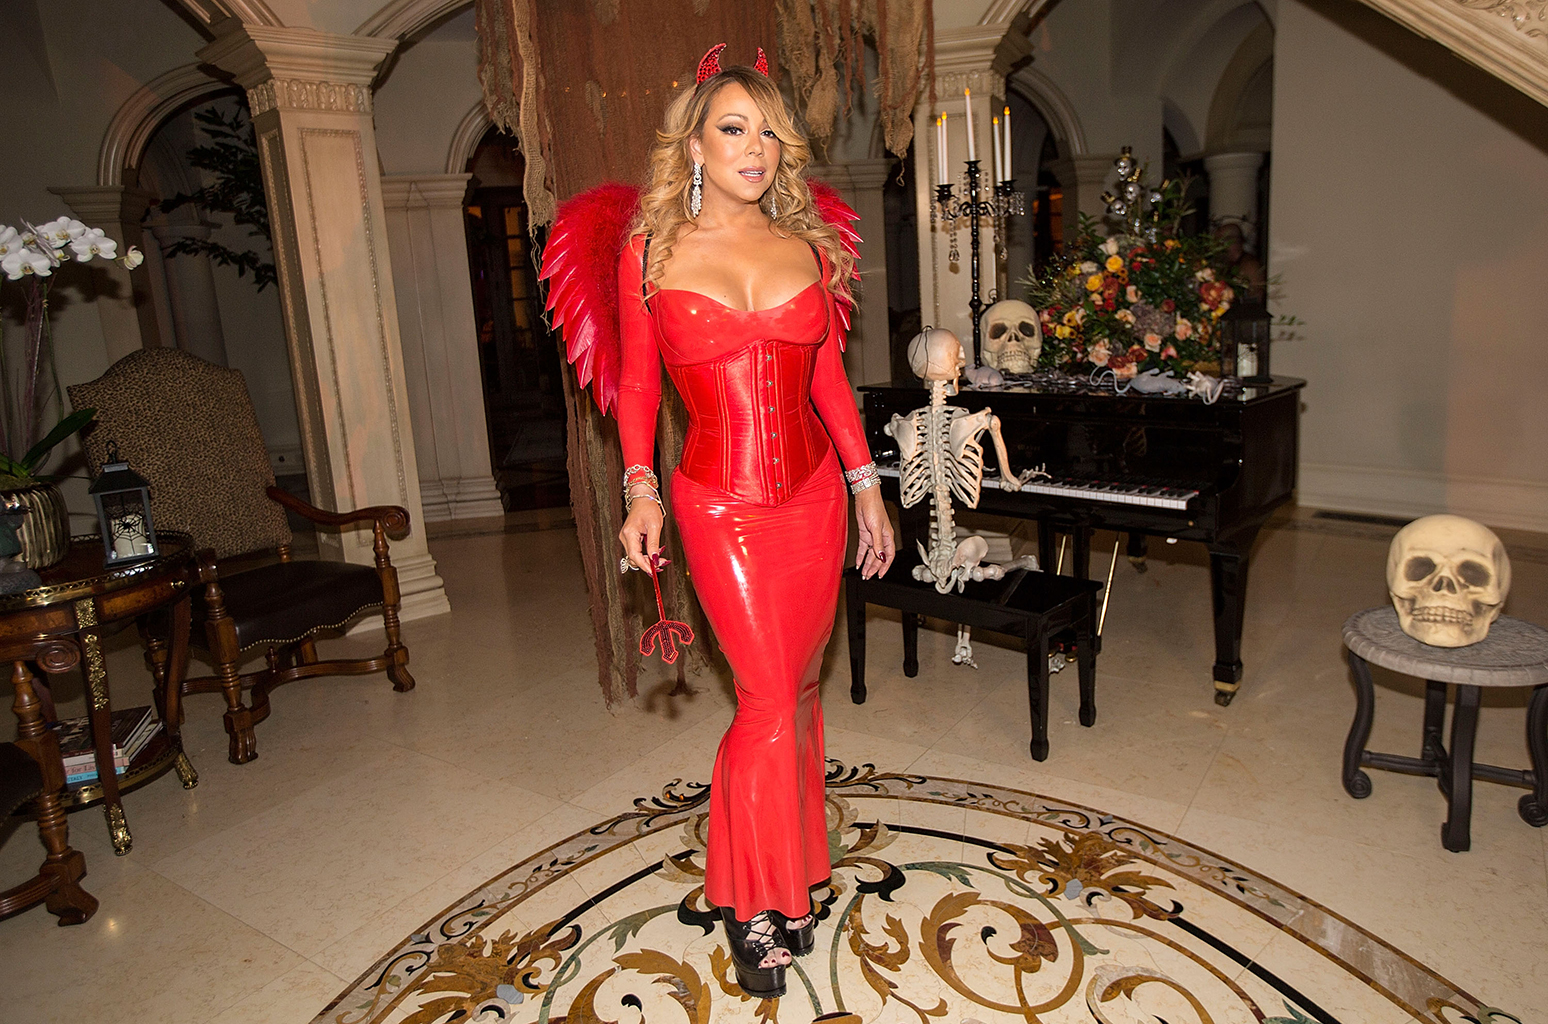 mariah carey wallpapers high quality | download free